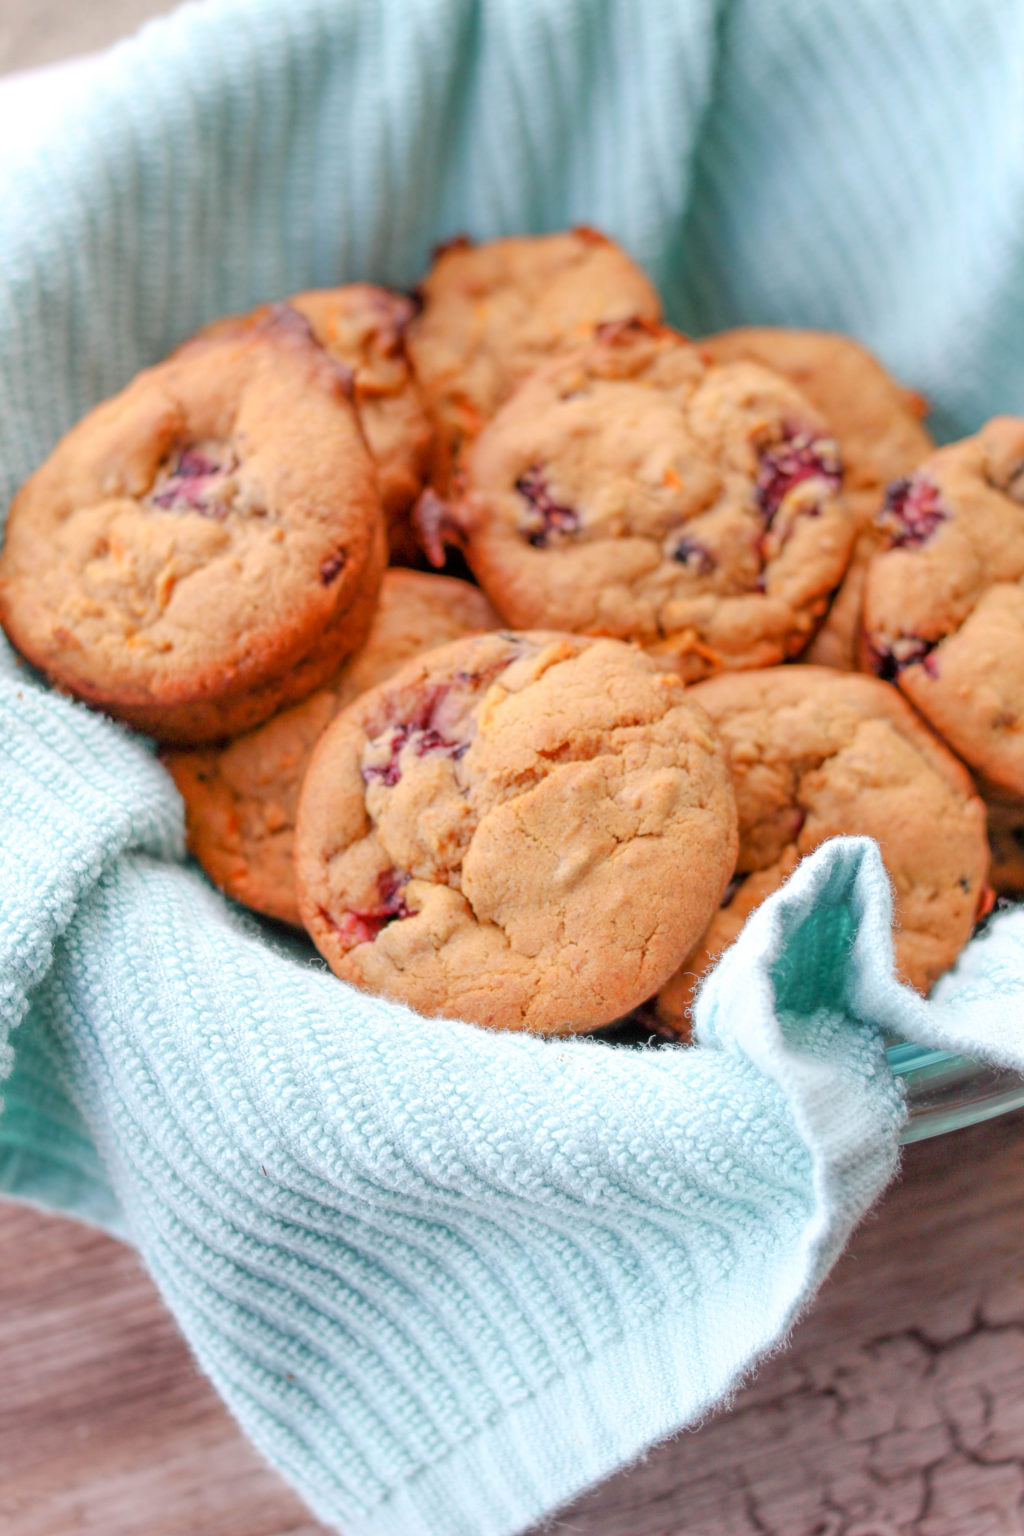 Whole wheat blackberry carrot applesauce muffins piled in a bowl lined with a teal kitchen towel